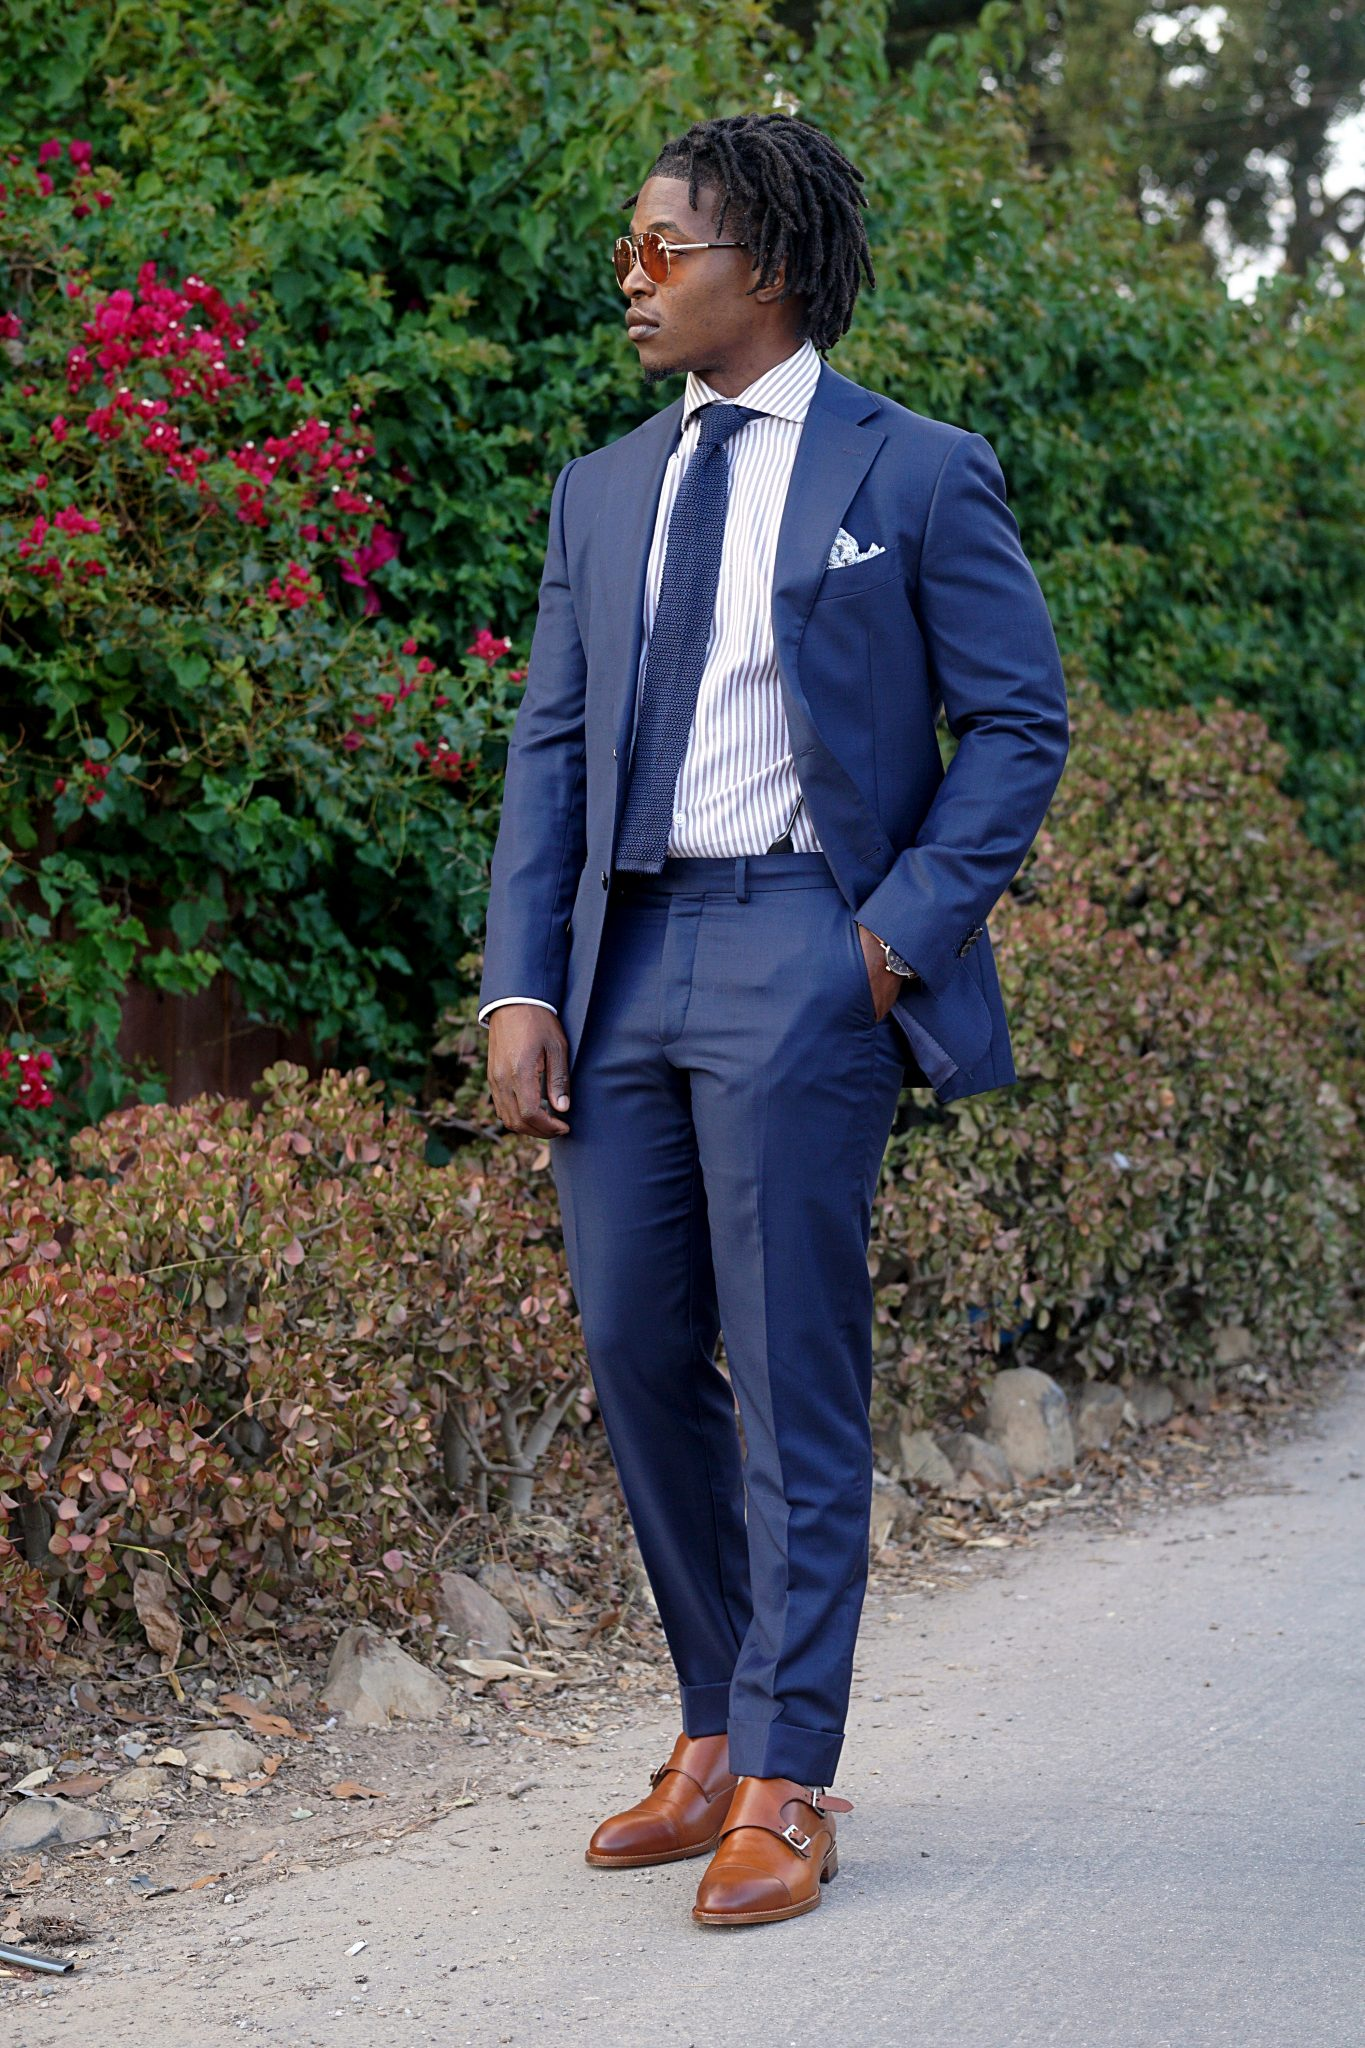 dapper advisor-navy blue suit outfit idea-business outfit idea-navy blue suit-suit supply suit-striped dress shirt-silk knit tie-black man with dreads